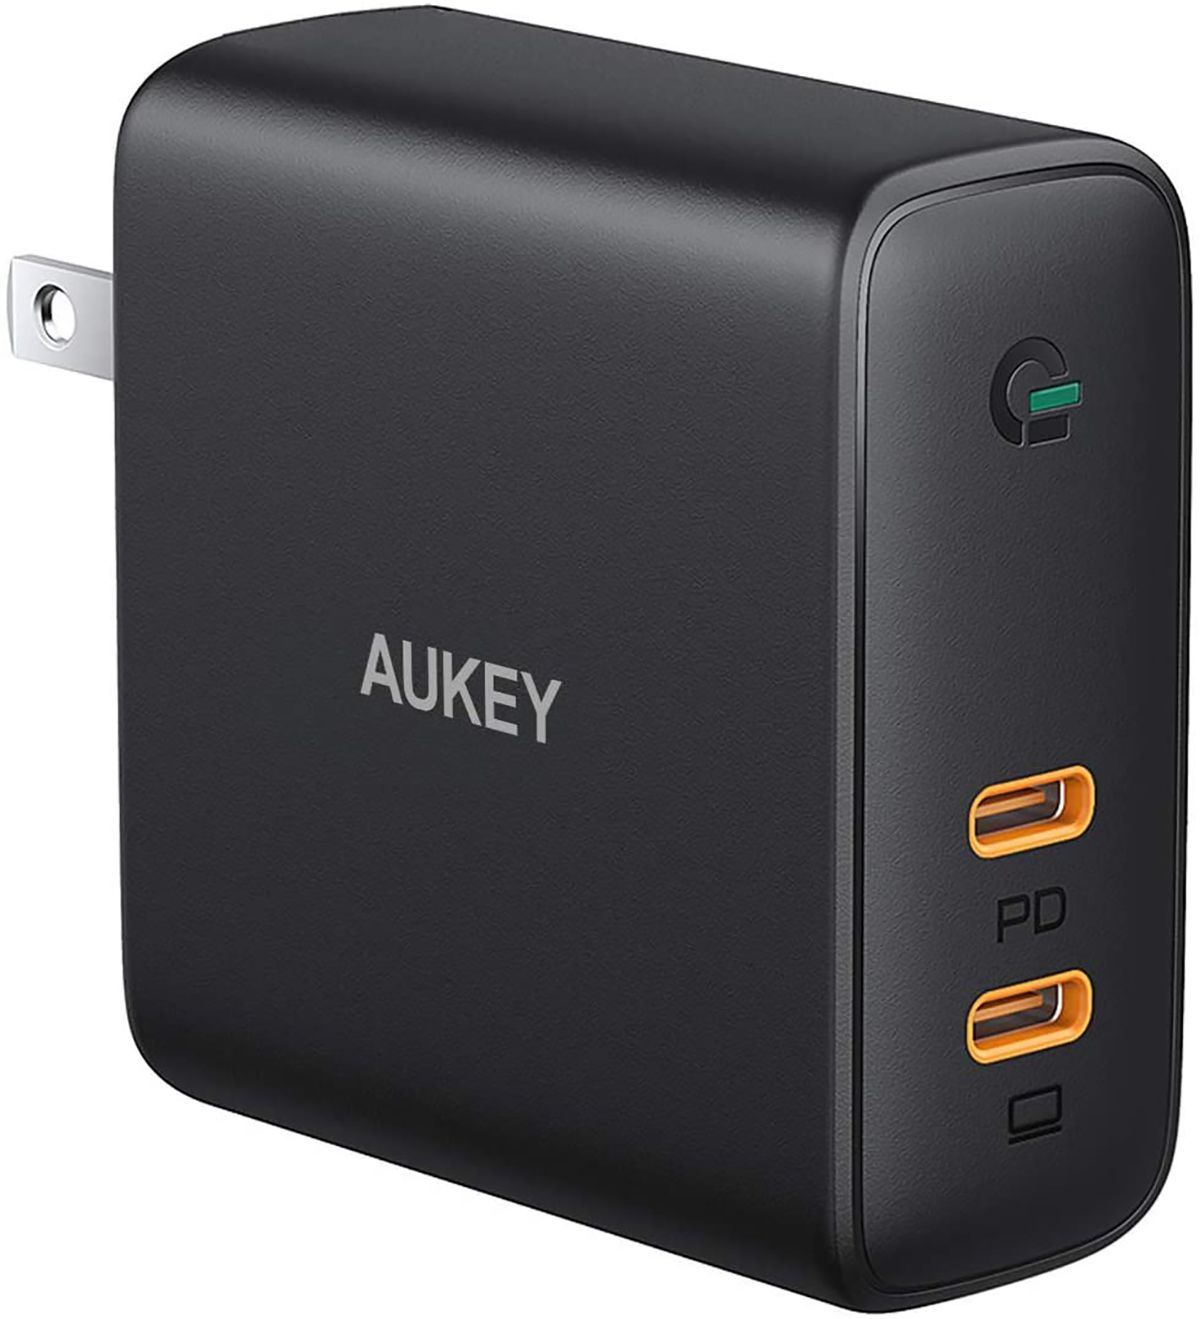 Aukey Omnia 100W 2-port USB-C PD charger with GaNFast technology